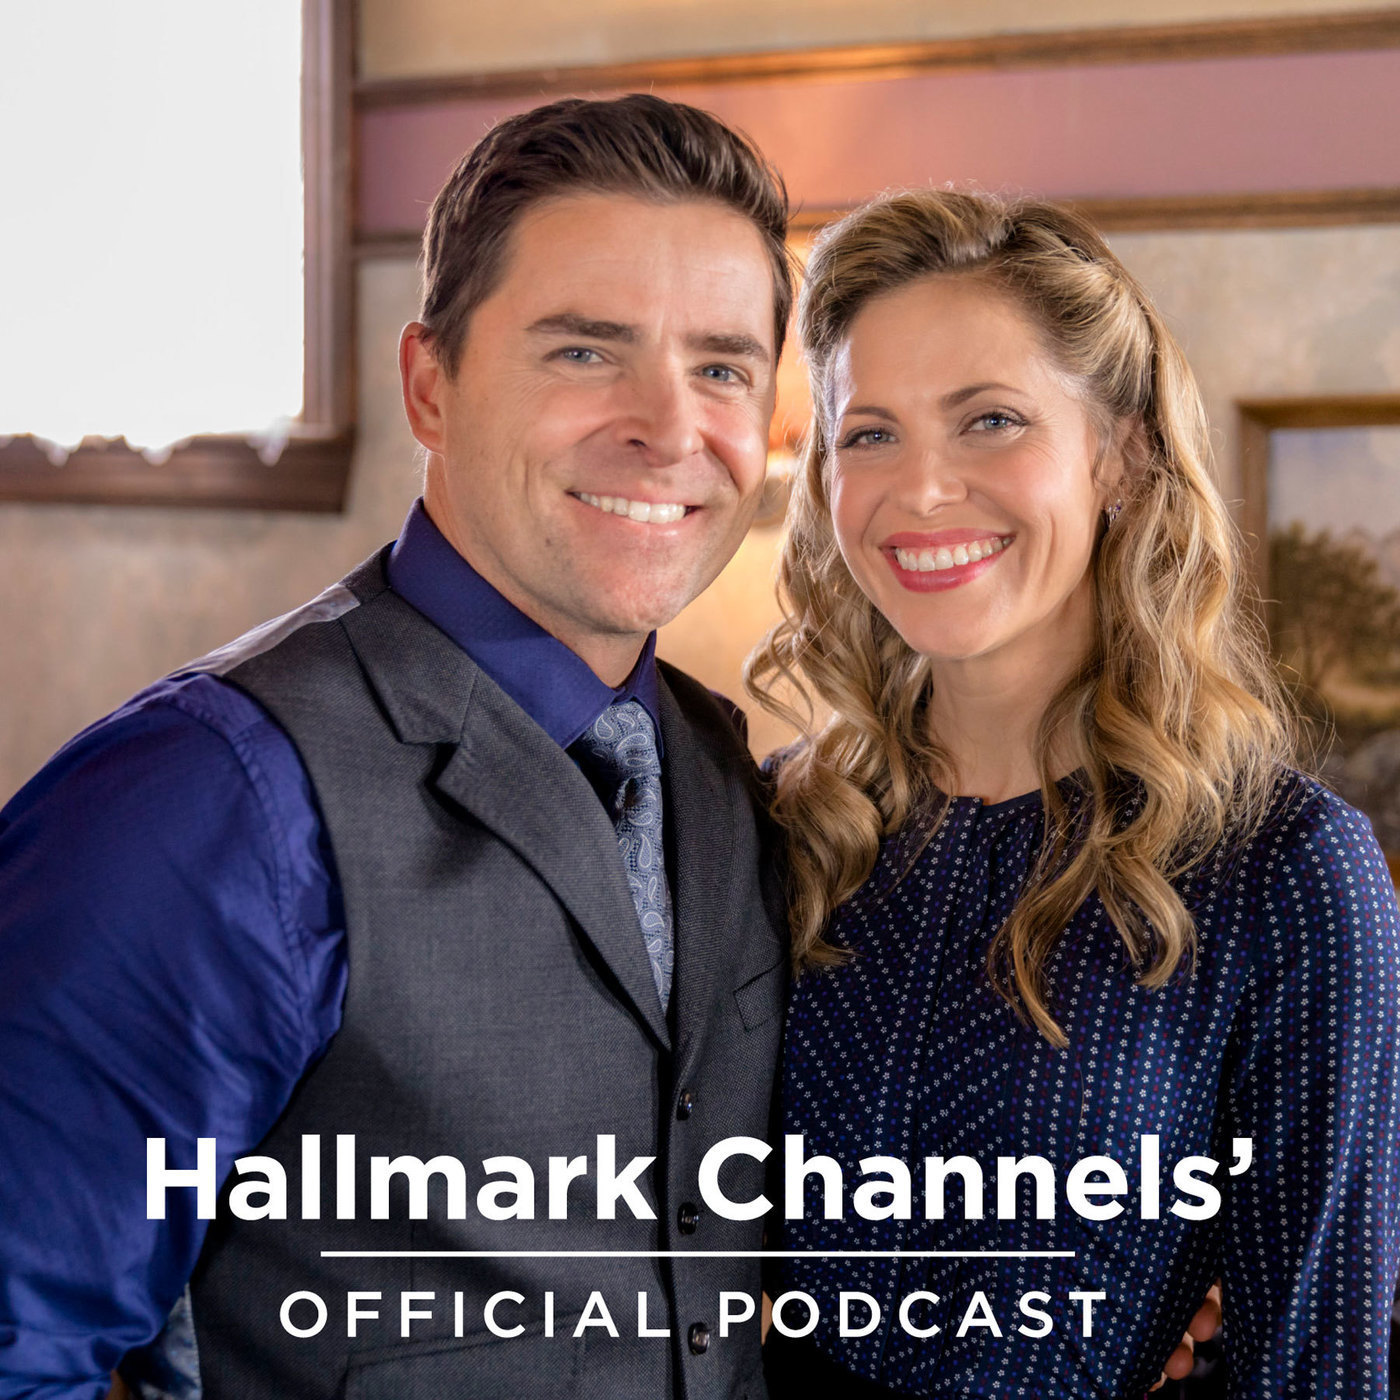 When Calls the Heart S:6 - The Queen of Hearts E:2 Recap - Hallmark Channels' Official Podcast